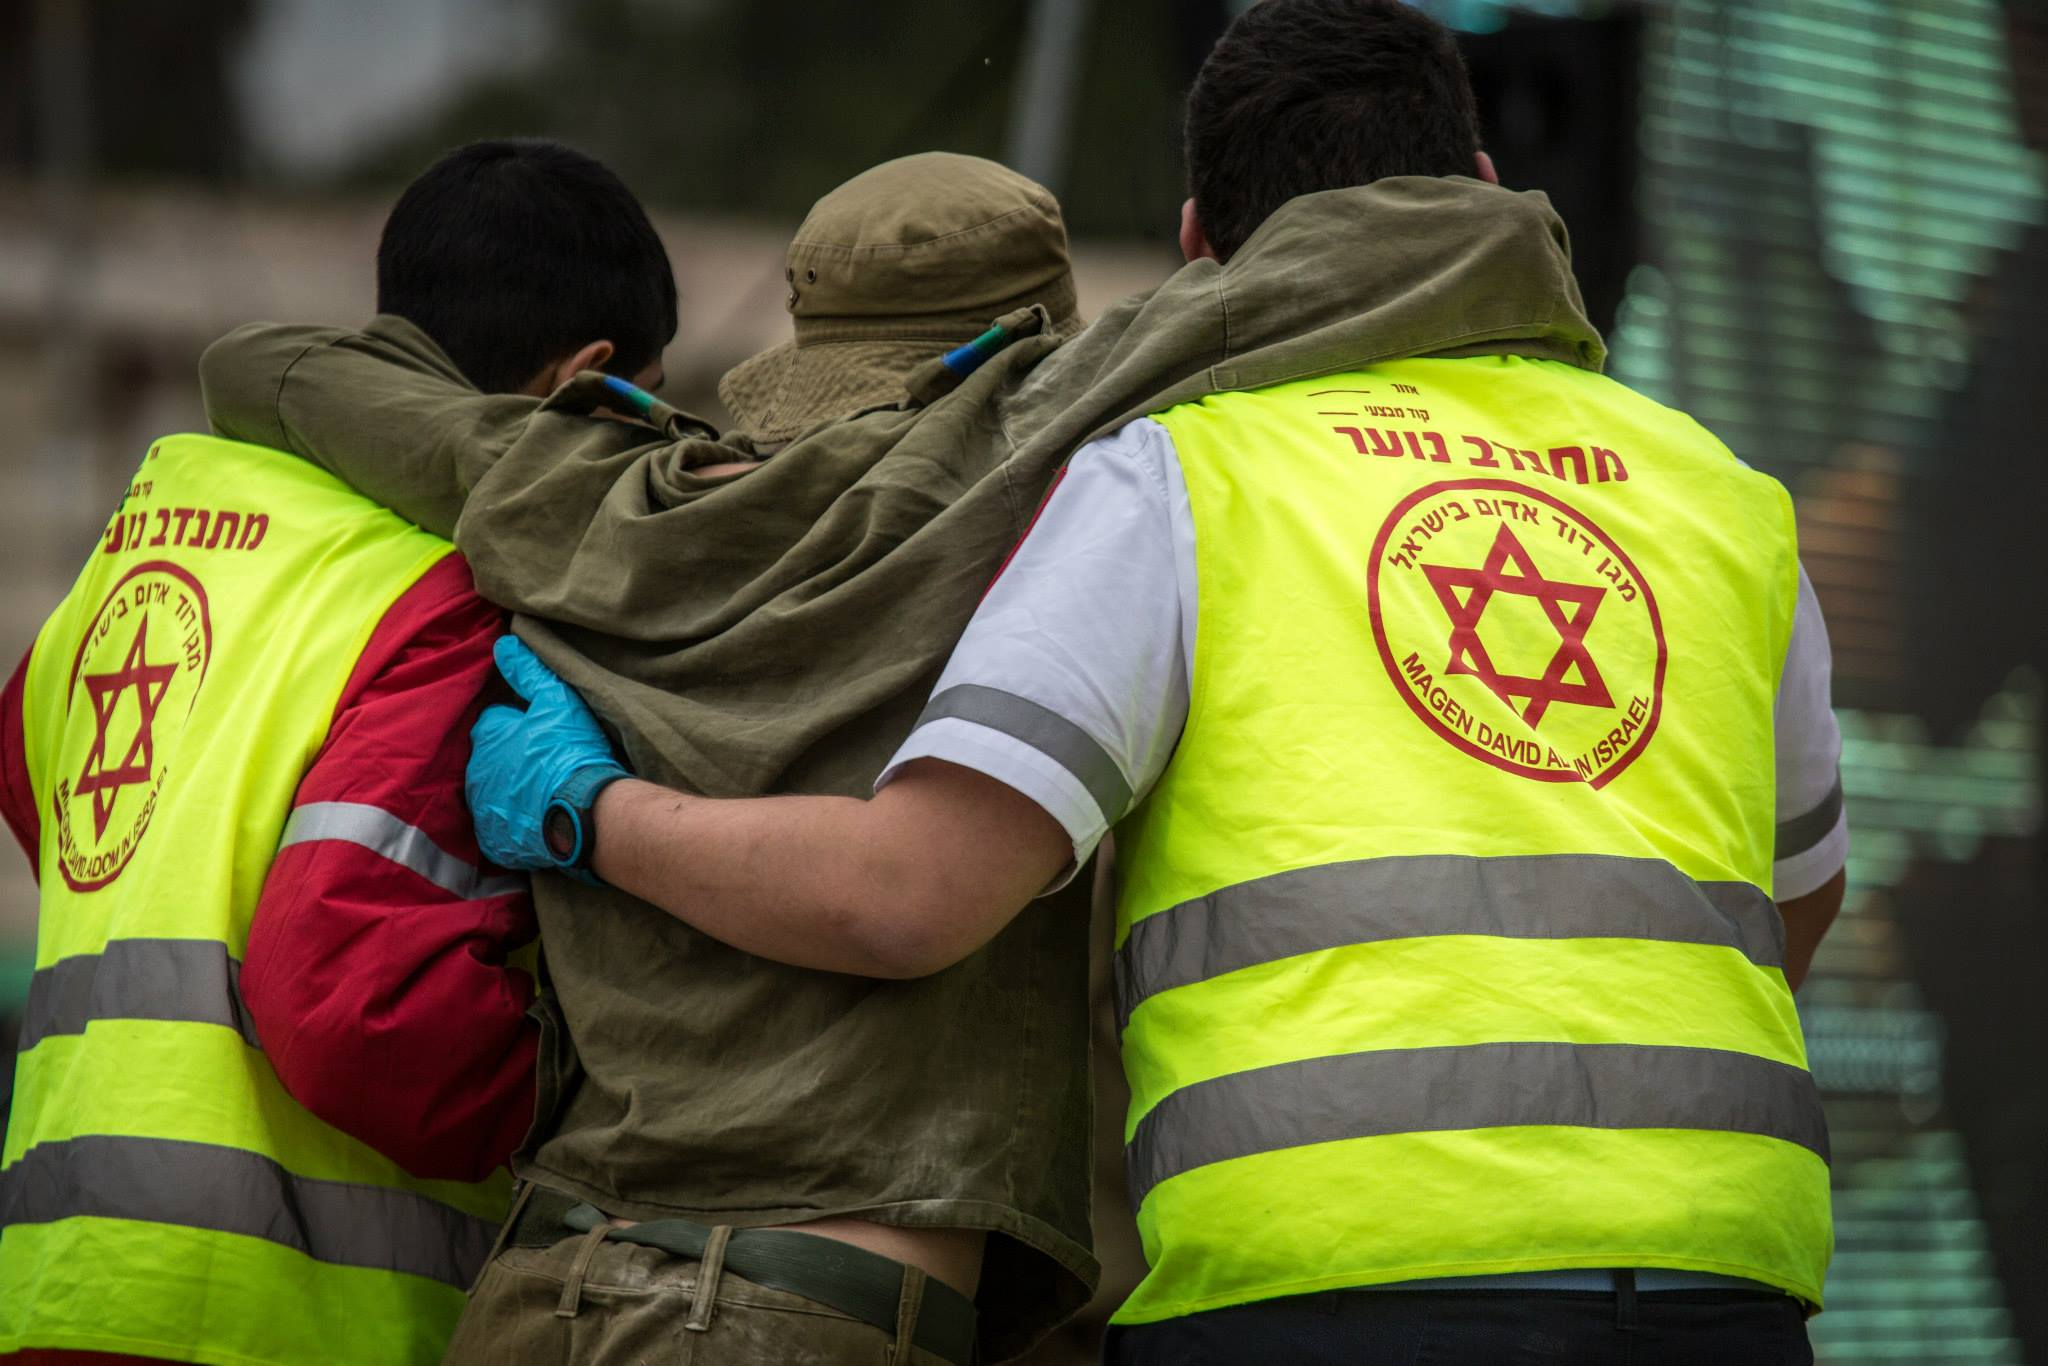 Magen David Adom Event - In Israel, in an emergency, you don